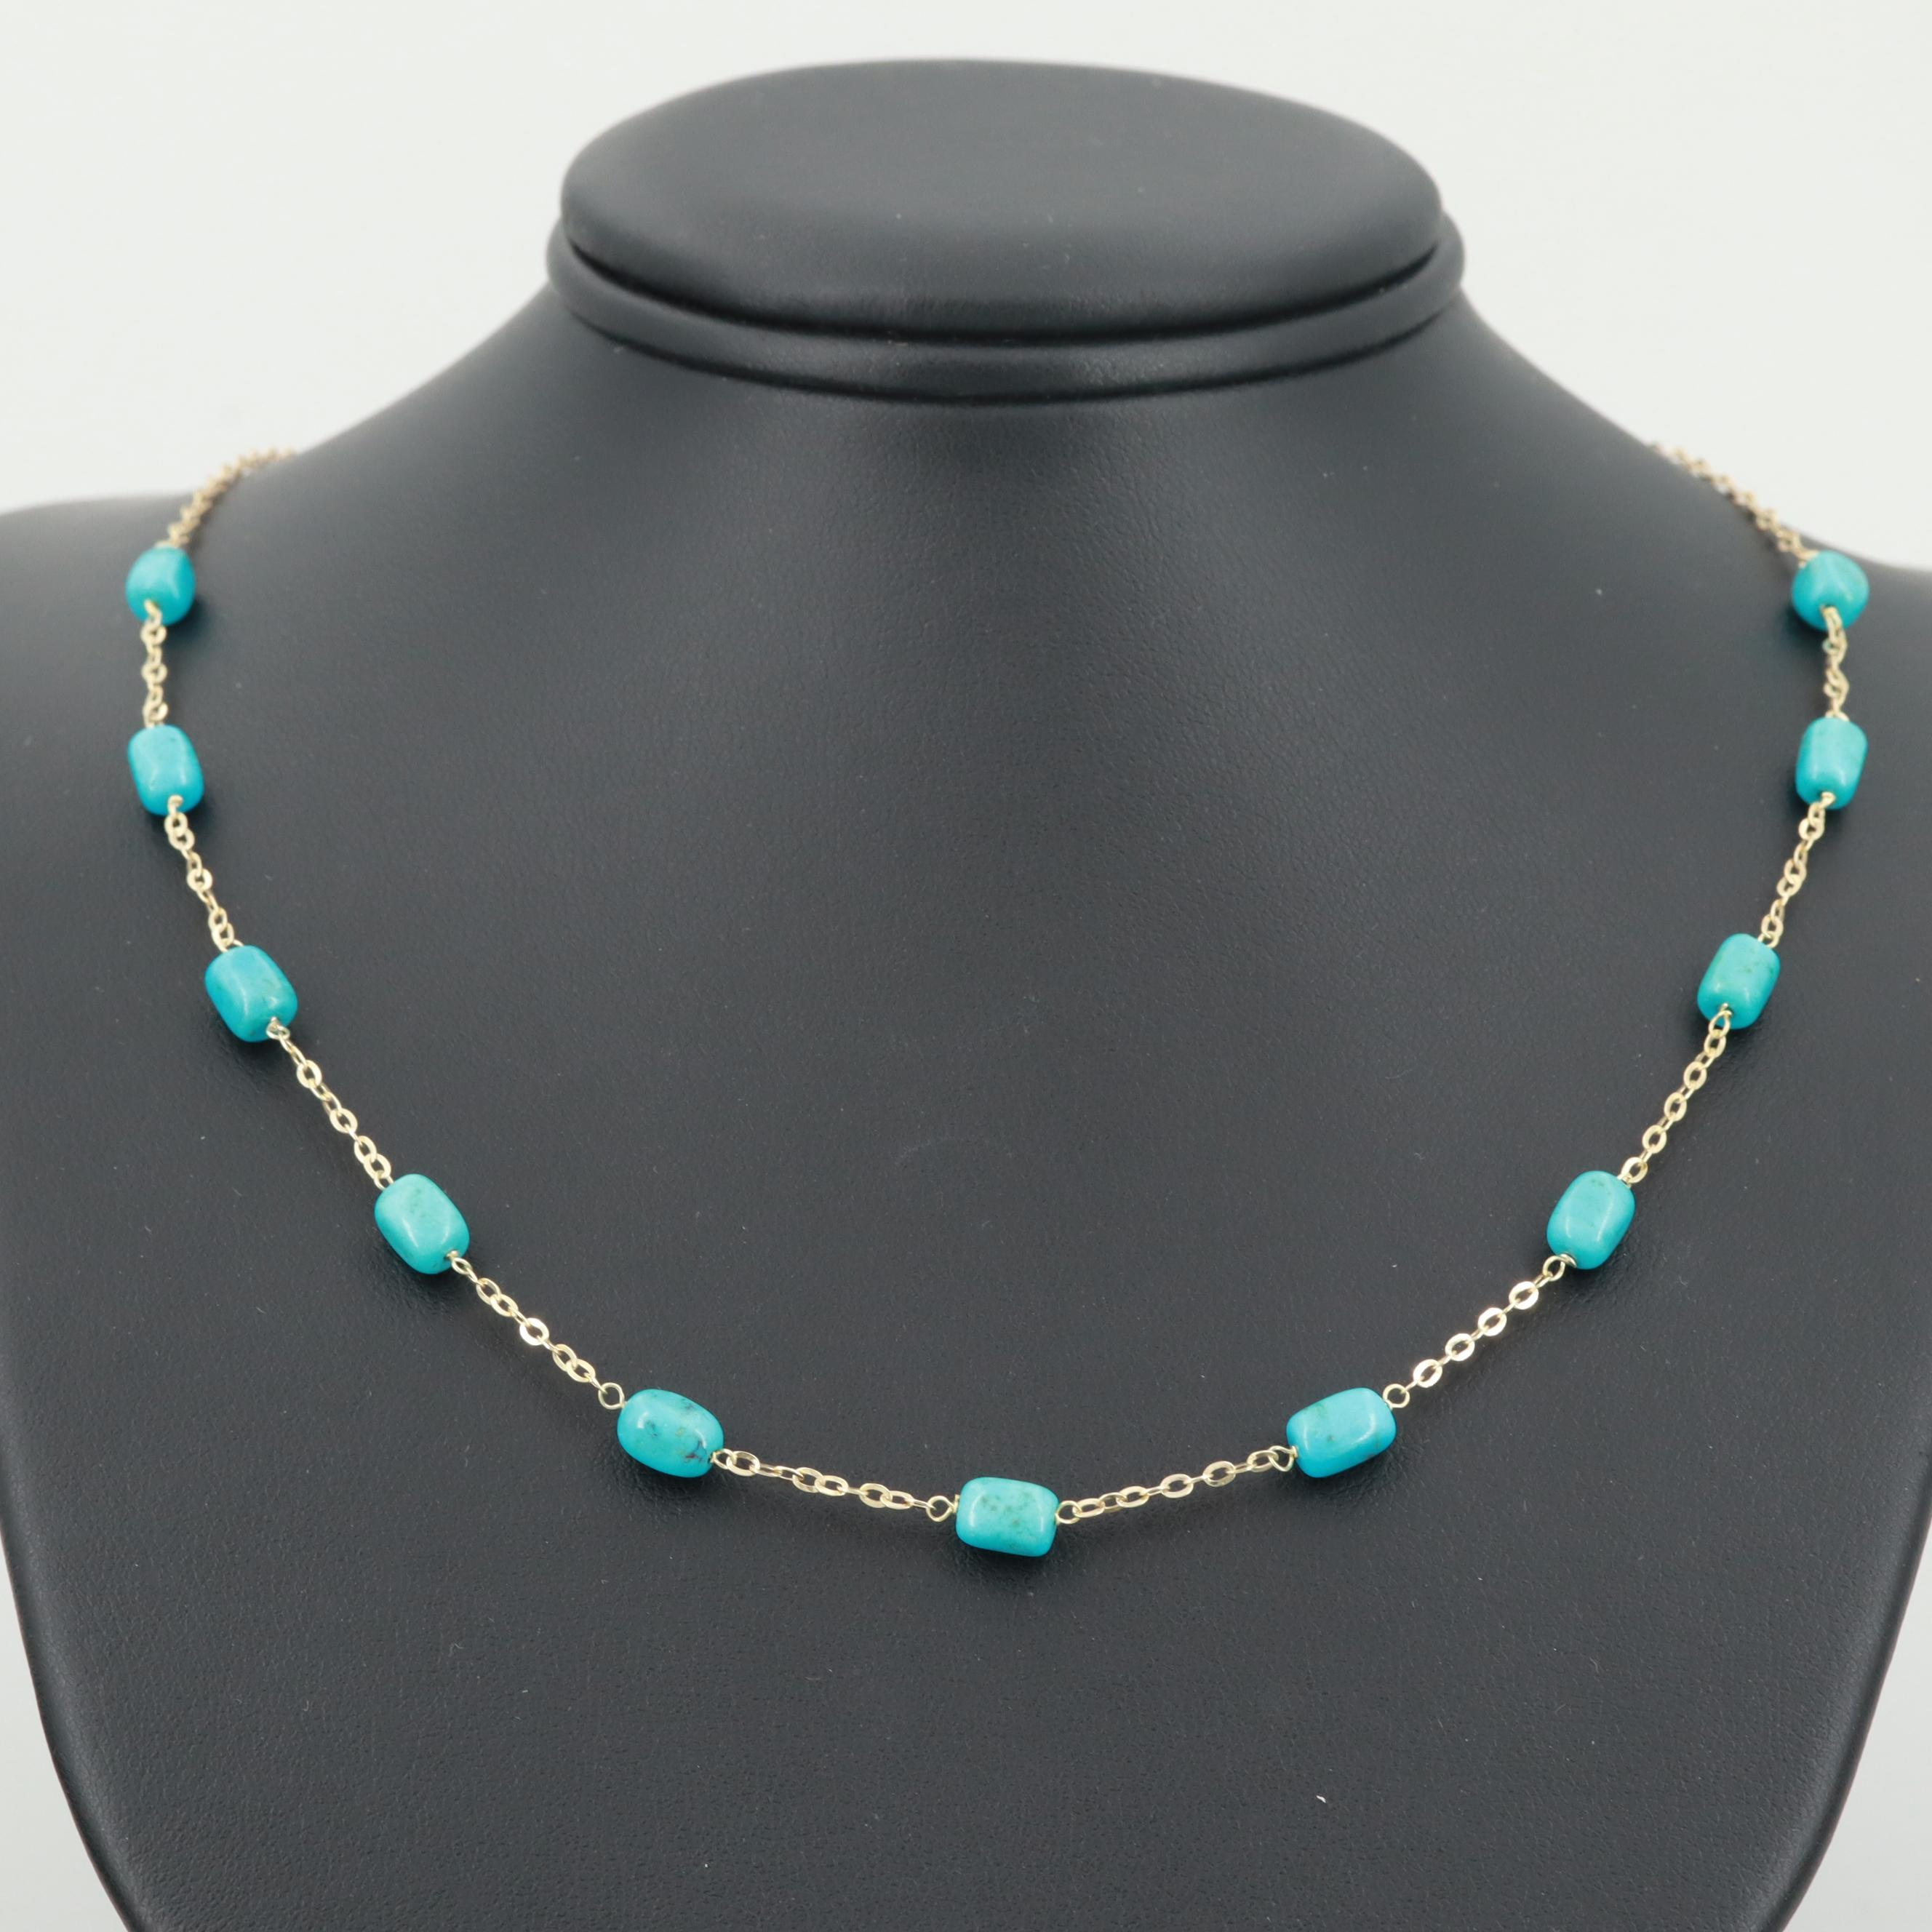 14K Yellow Gold Turquoise Station Necklace